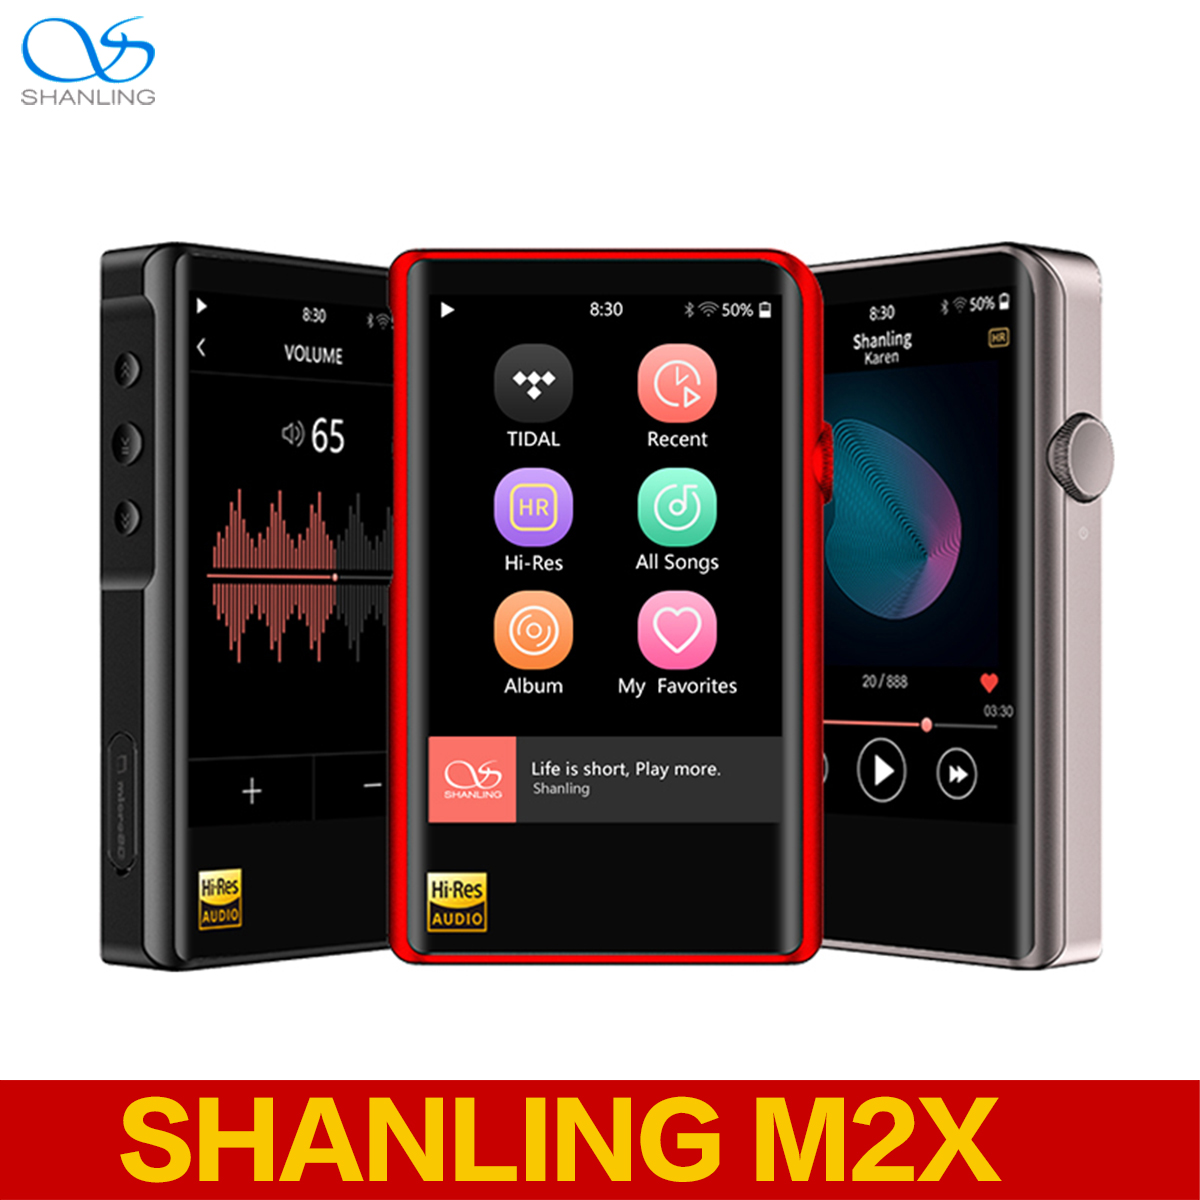 SHANLING M2X AK4490EN DSD256 HzWiFi Hallo-Res <font><b>MP3</b></font> <font><b>Player</b></font> Bluetooth Lossless Hifi Musik-<font><b>Player</b></font> <font><b>DAC</b></font> Flac WAV-<font><b>Player</b></font> image